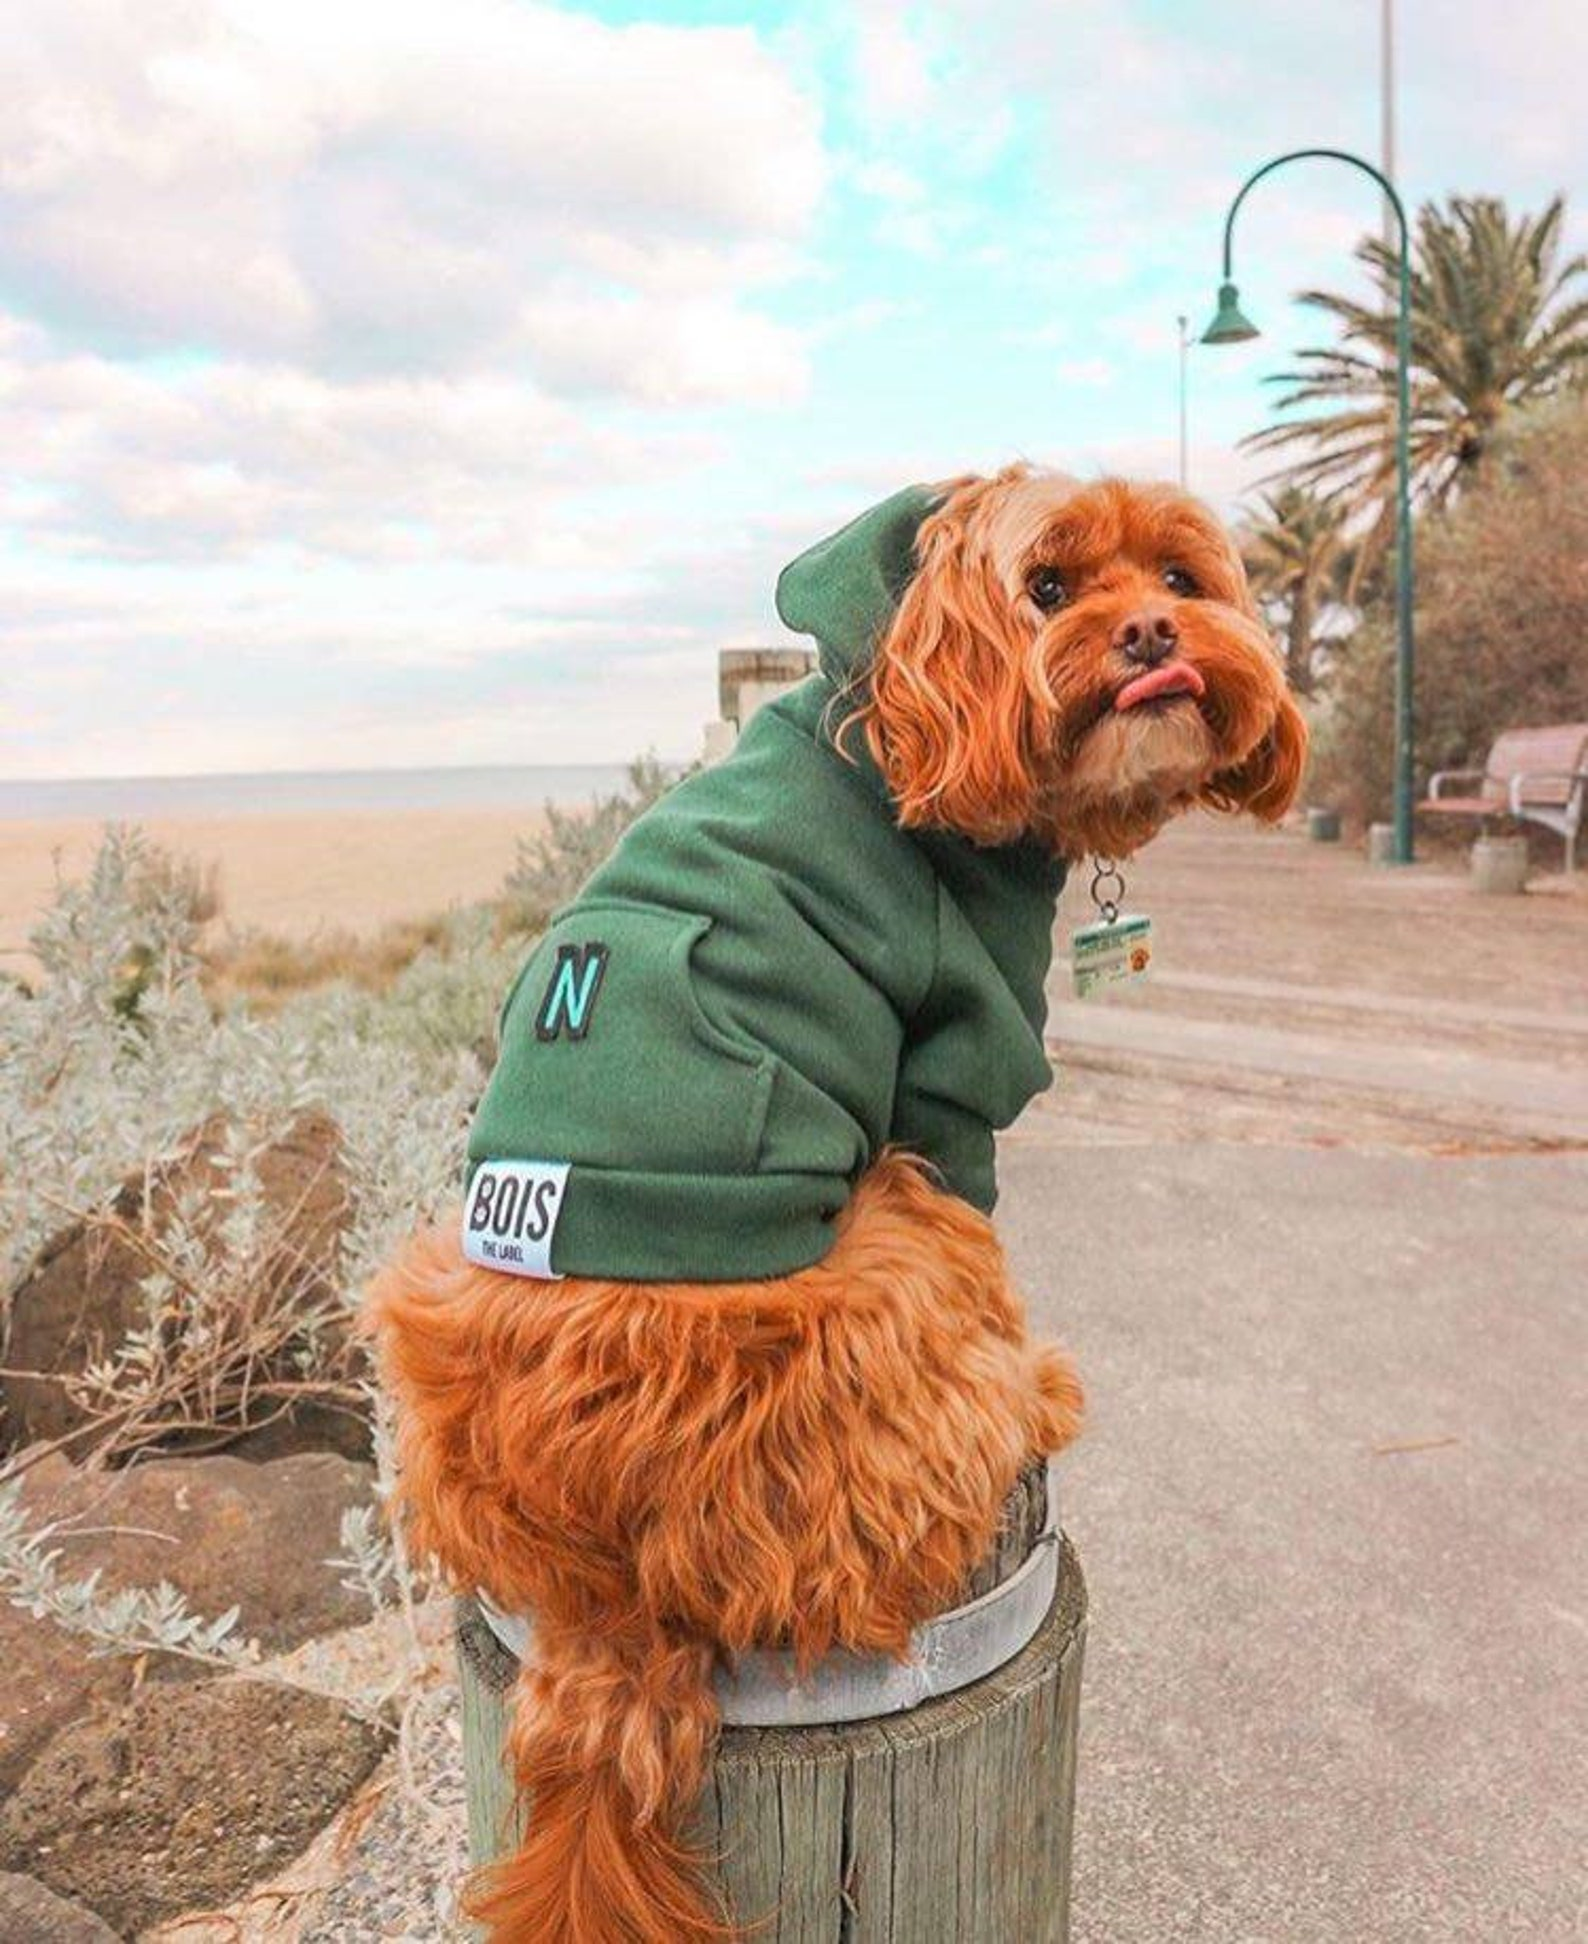 Dog posing at the beach in green dog hoodie